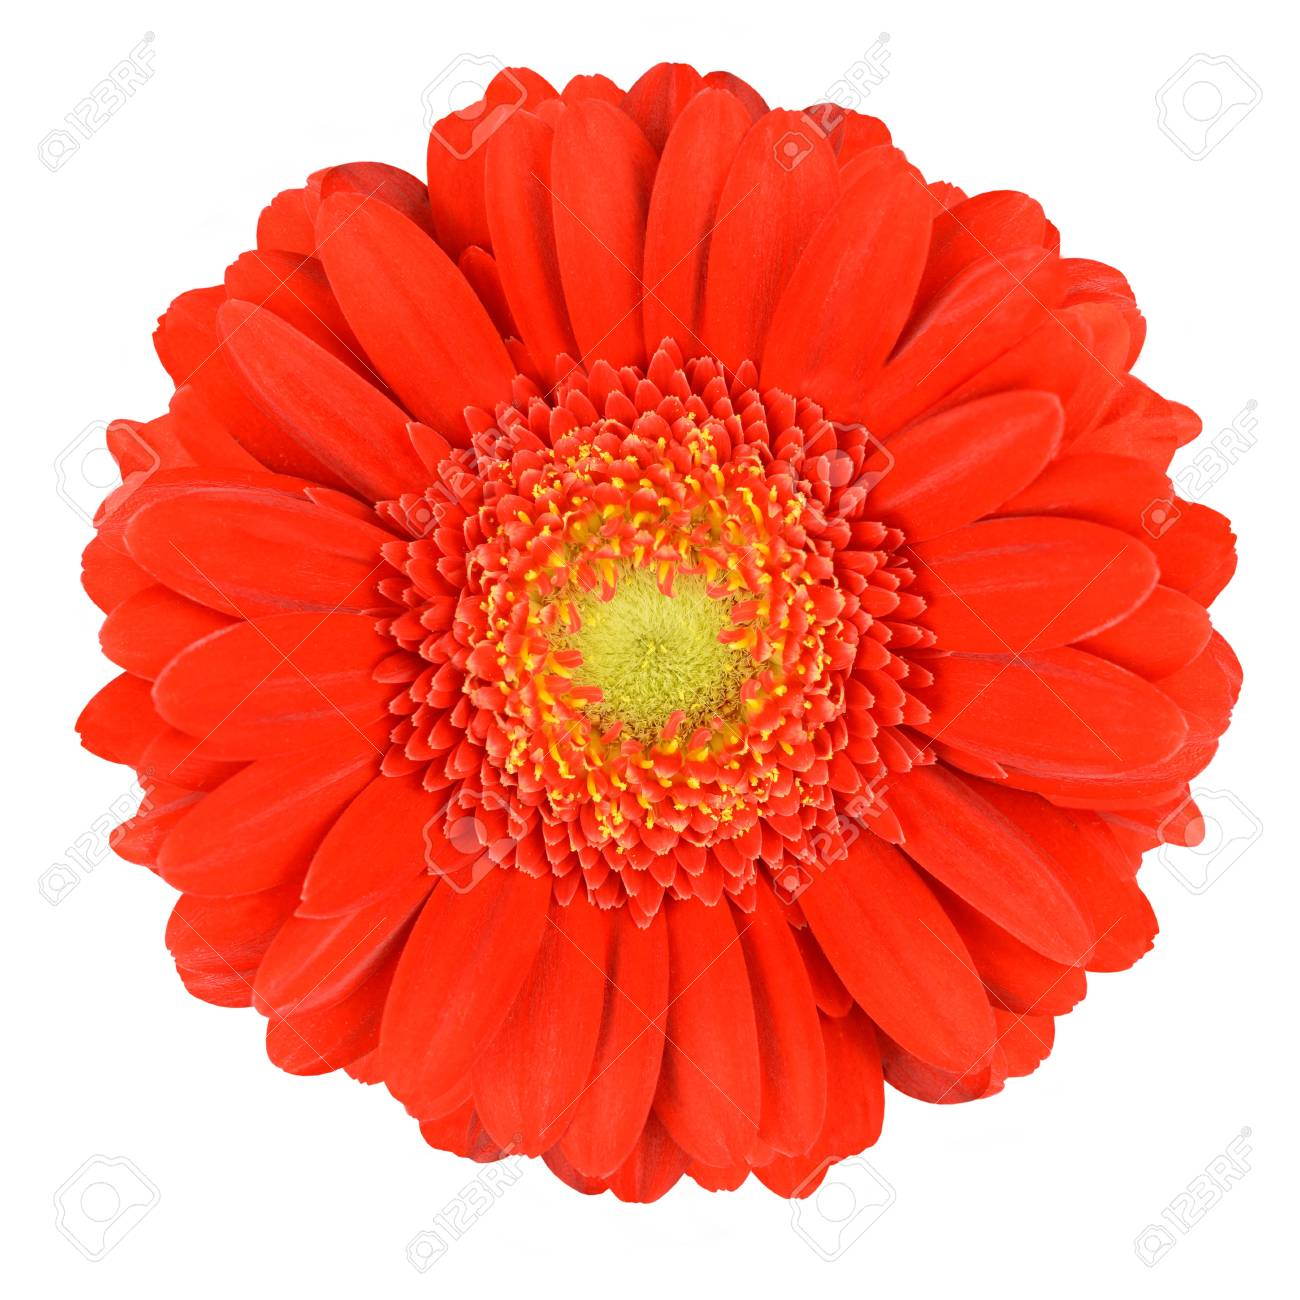 Perfect Orange Gerbera Flower With Yellow Center Close Up Isolated